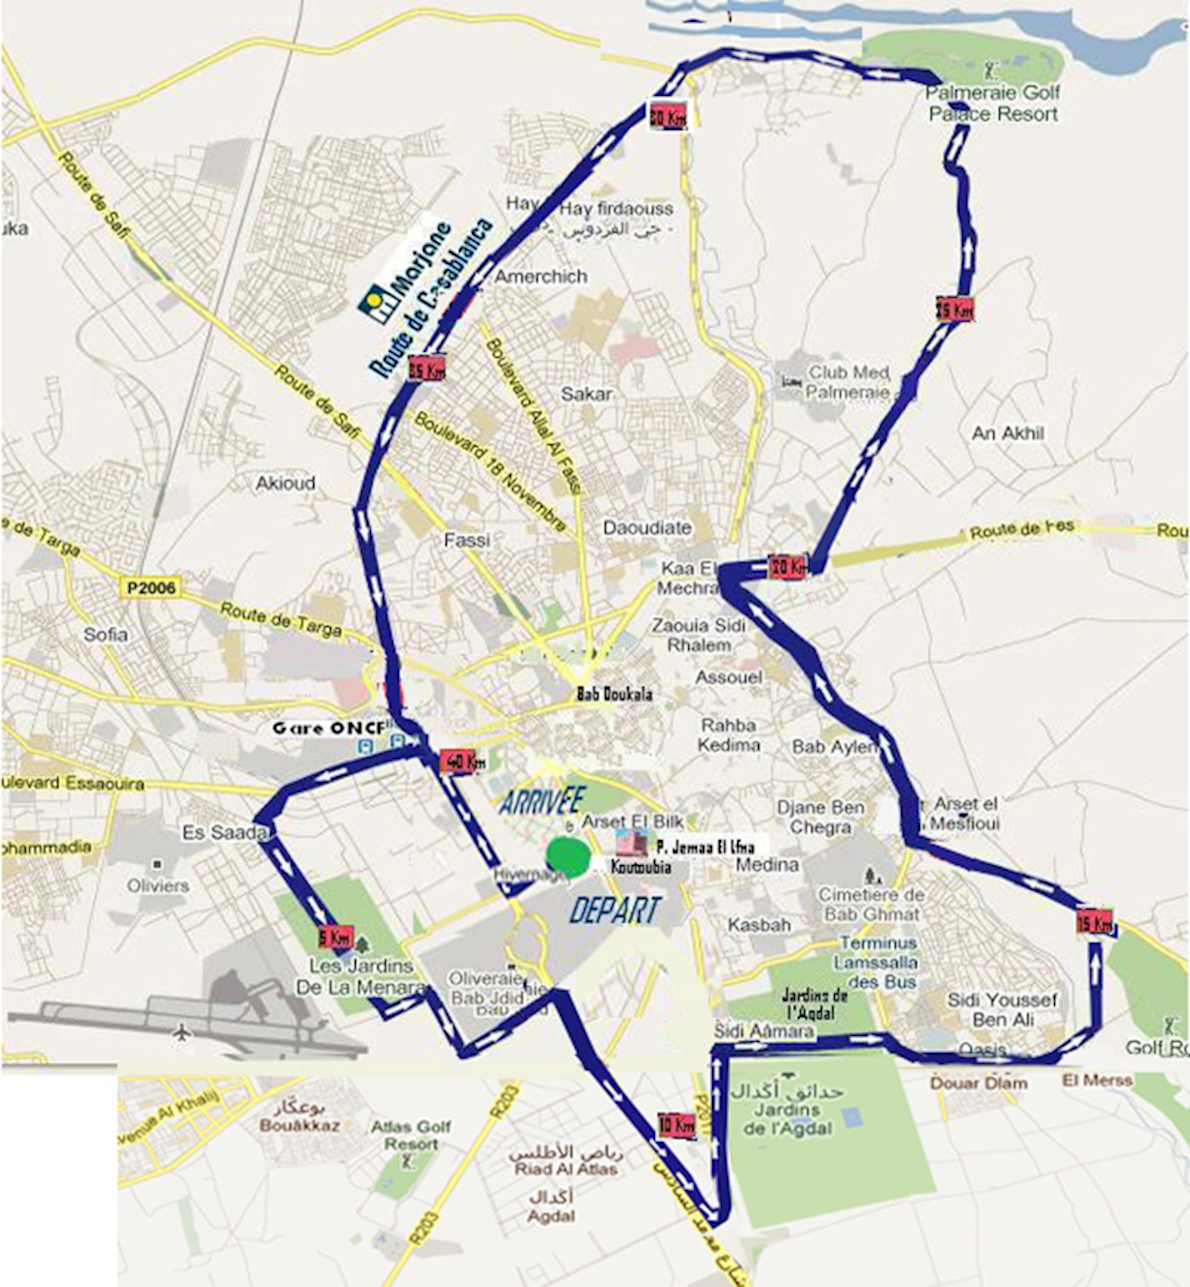 International Marathon of Marrakech Route Map